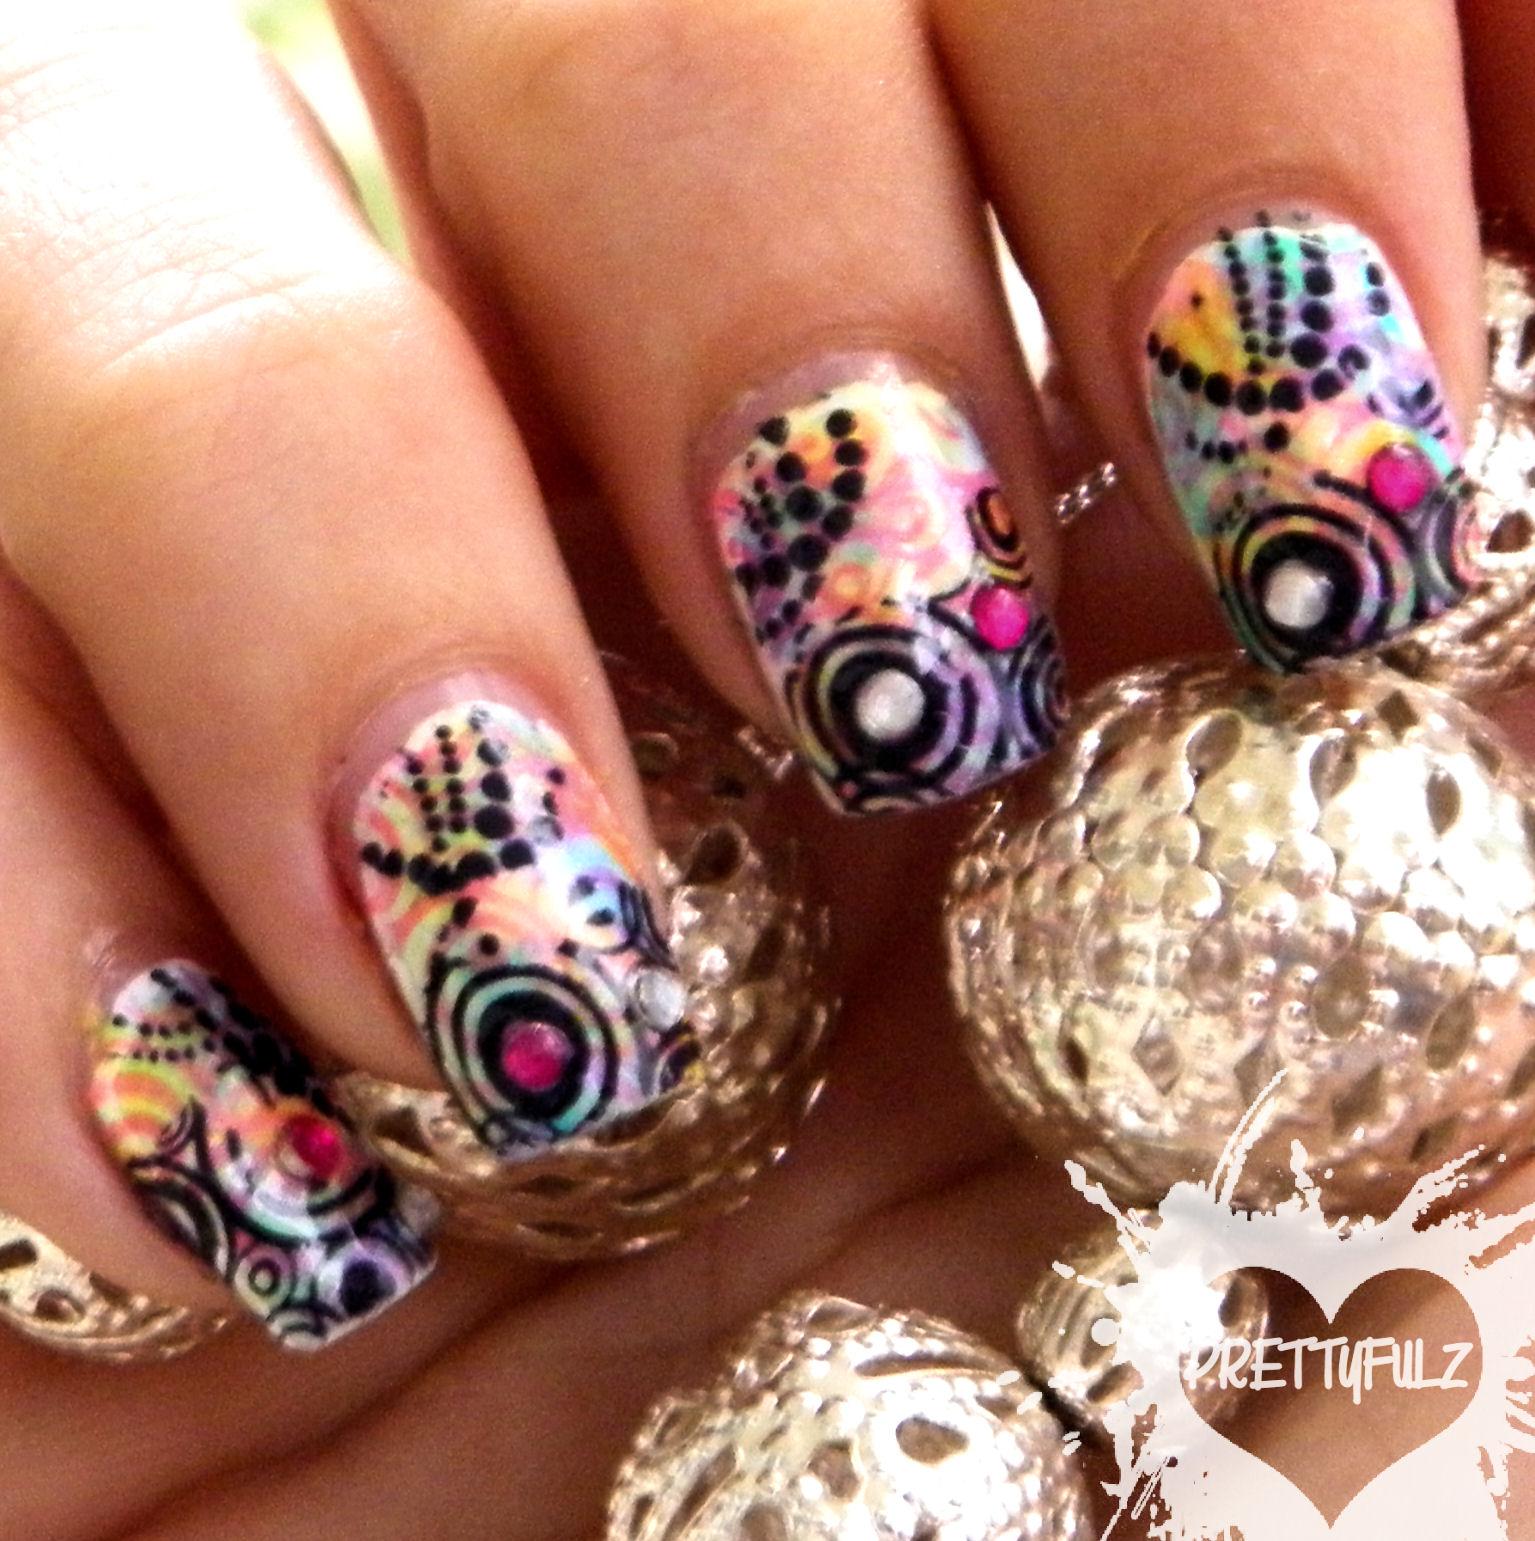 Prettyfulz Fall Nail Art Design 2011: Prettyfulz: Nail Art Challenge: Wallpaper/Background